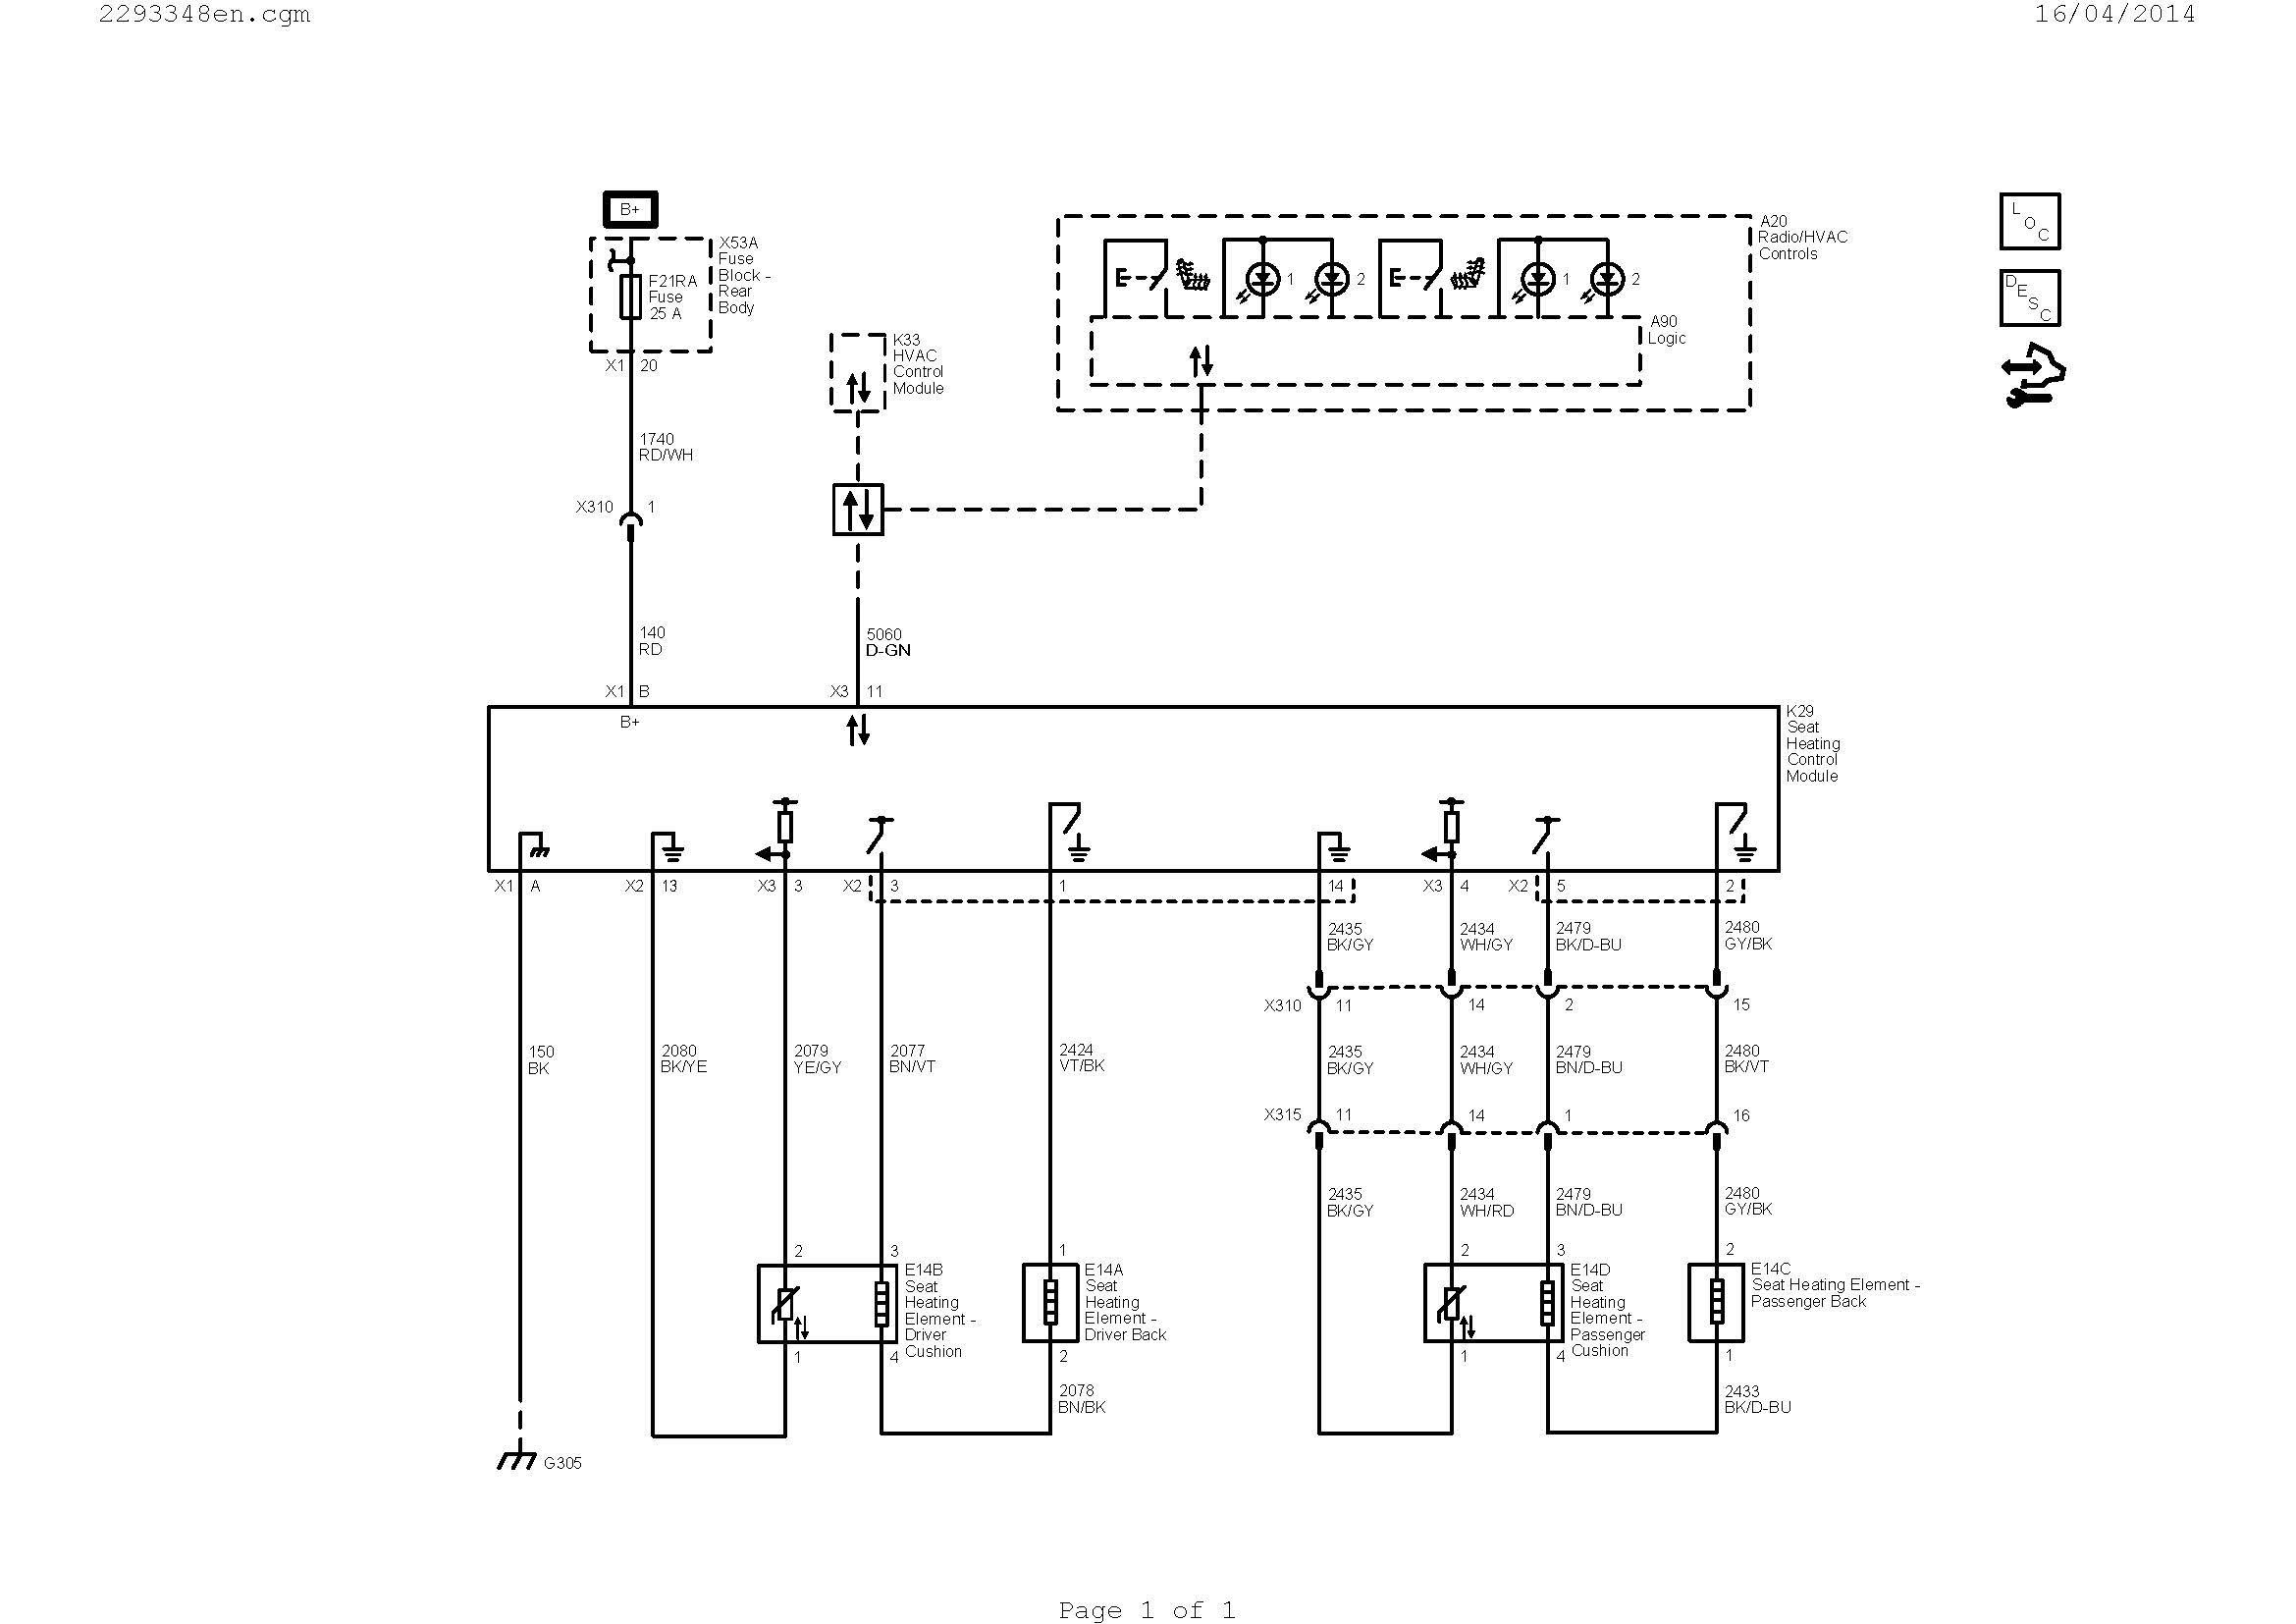 Wiring Diagram for Furnace with Ac Best Furnace Parts Diagram New Hvac Diagram Best Hvac Diagram